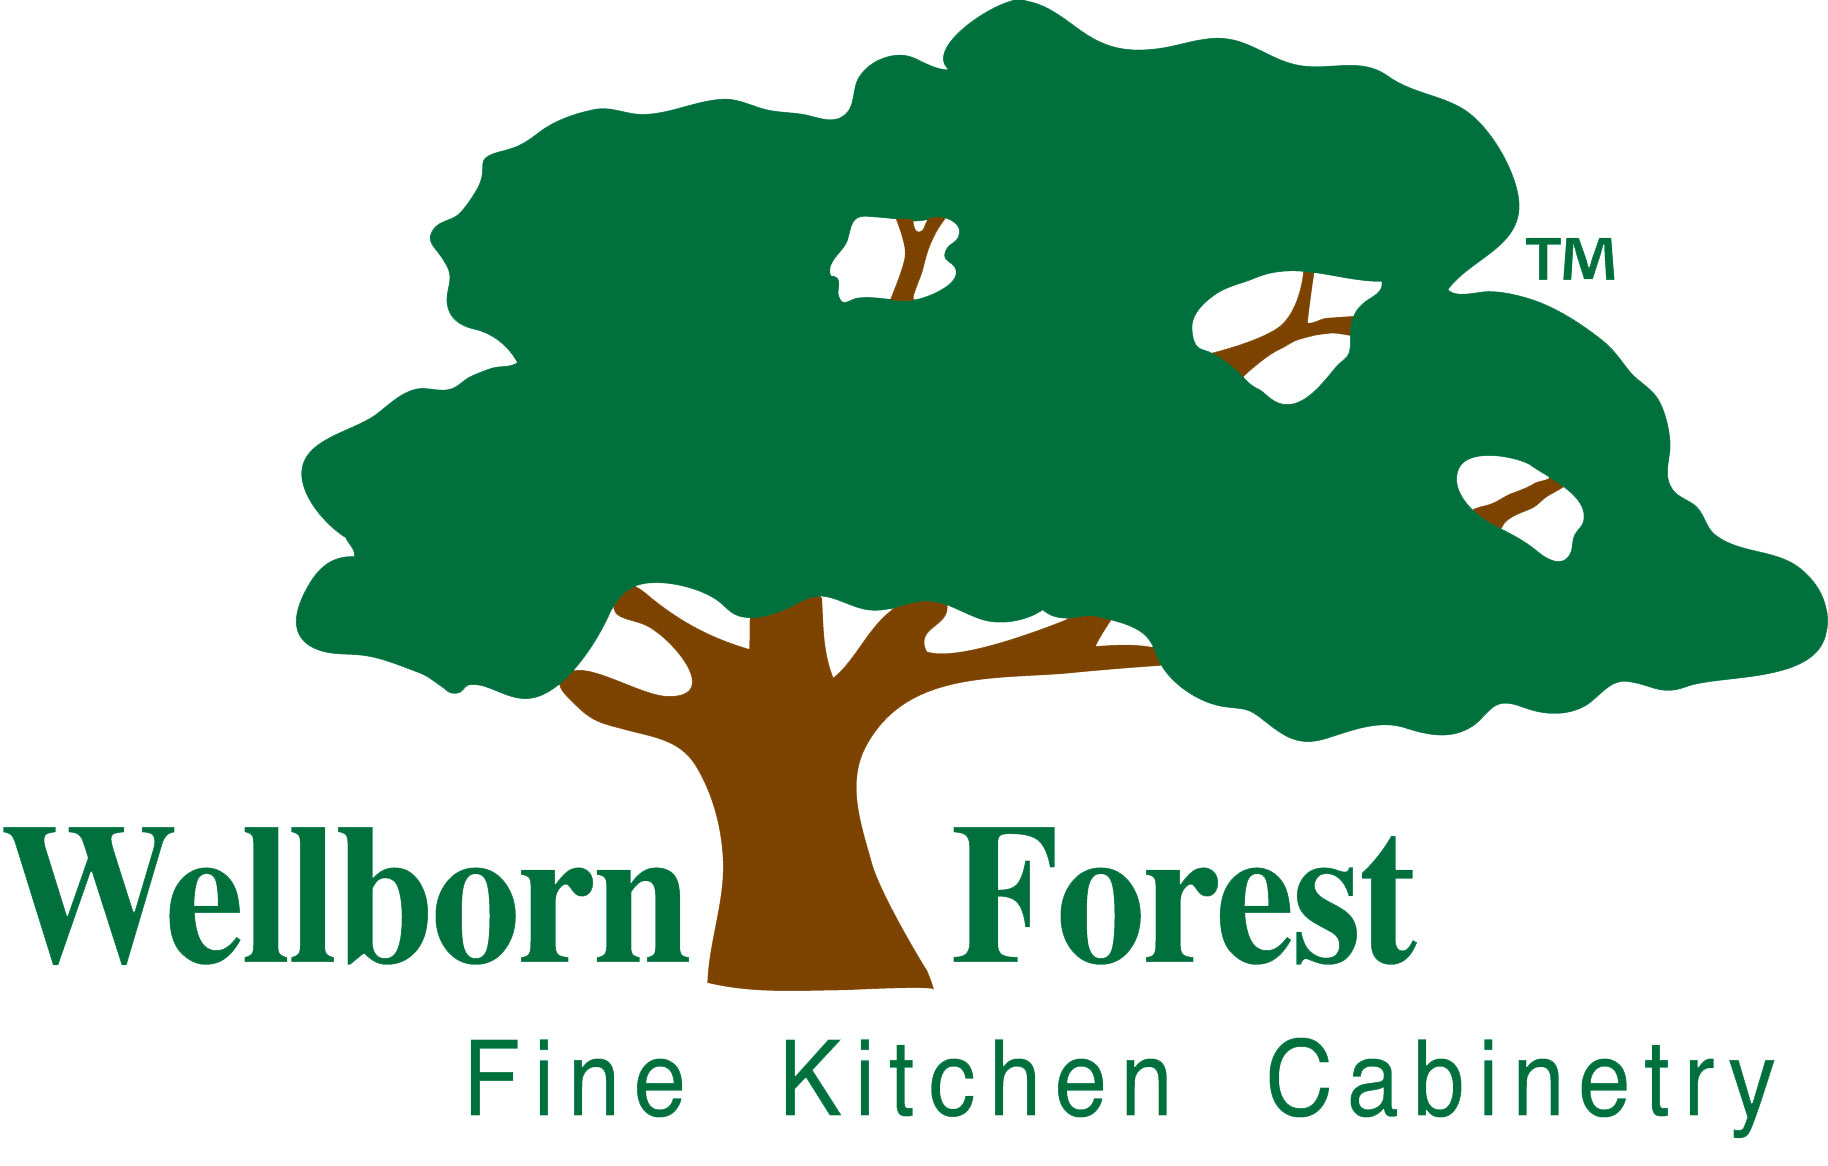 Wellborn-Forest-logo-web-optimized.jpg